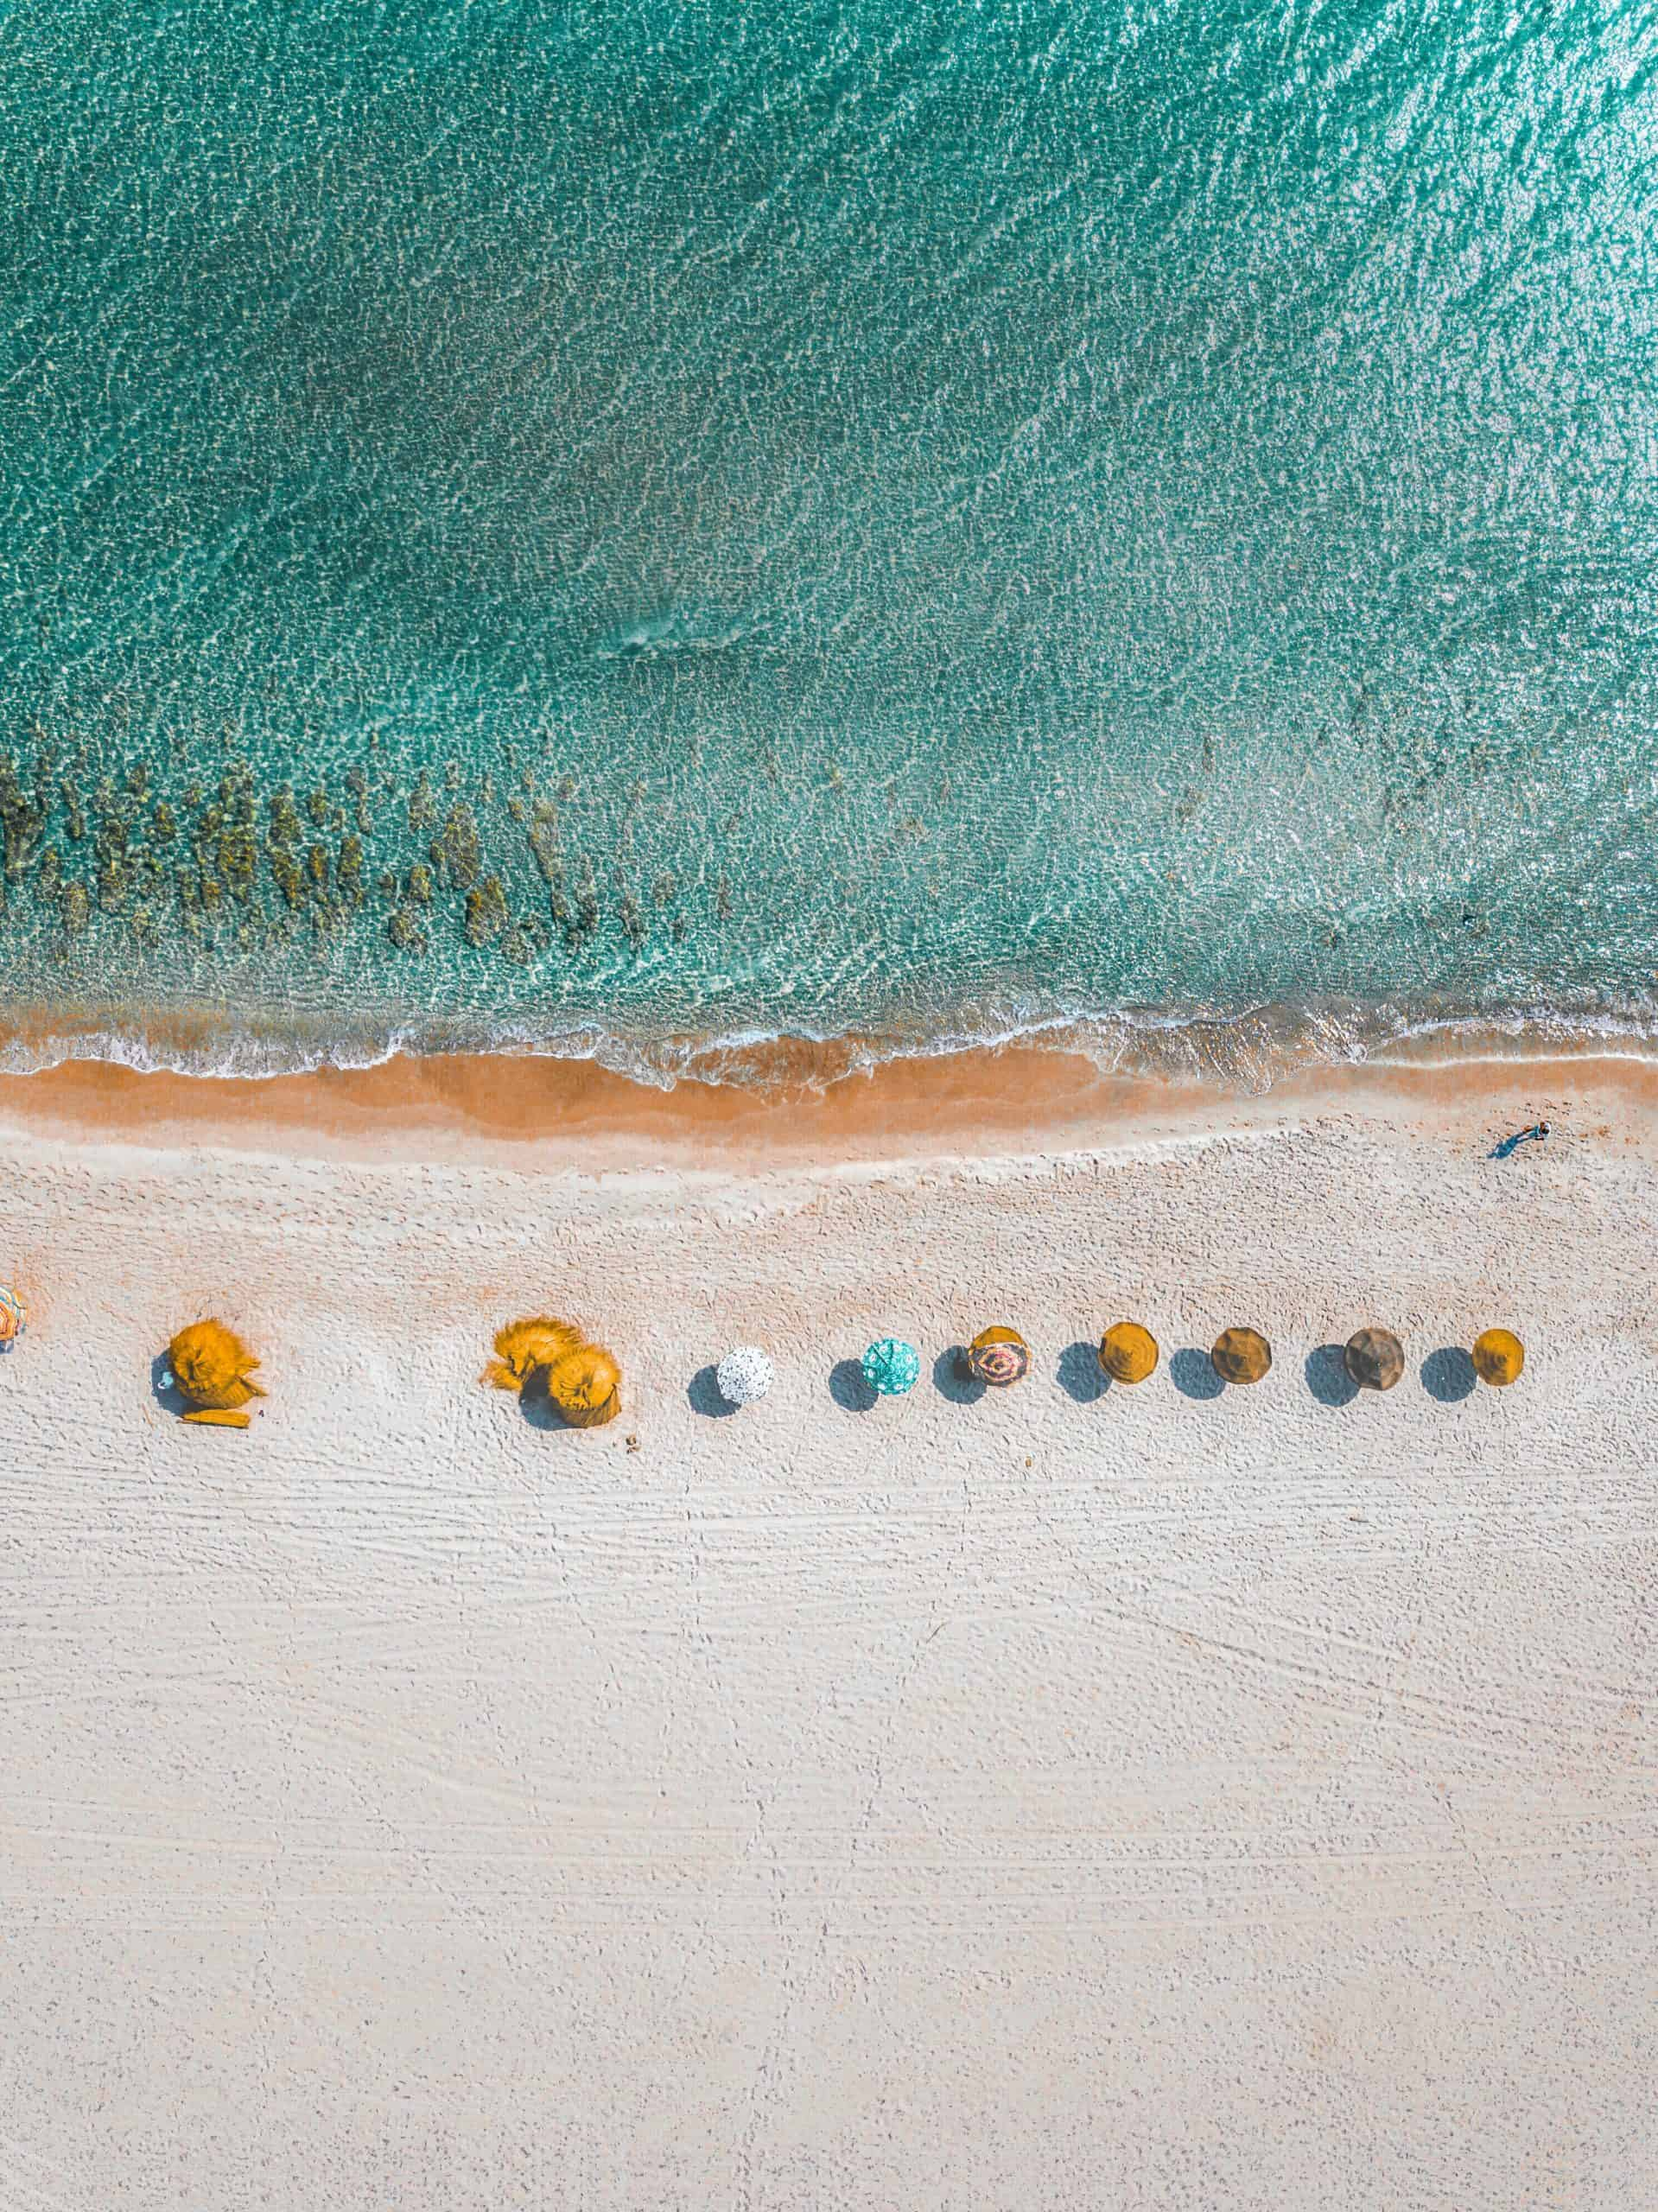 The Best Island The World by Raph Koster